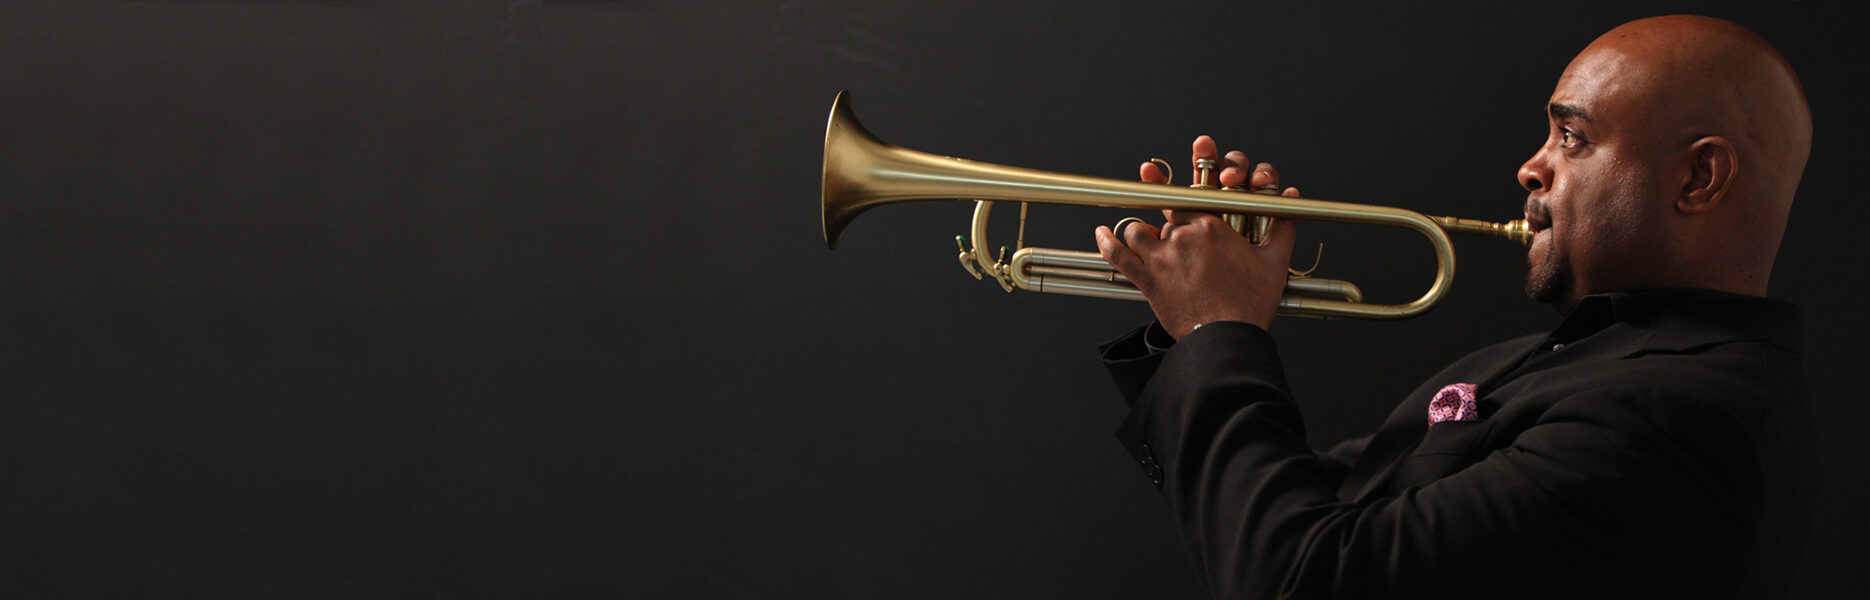 Terrell Stafford playing the horn